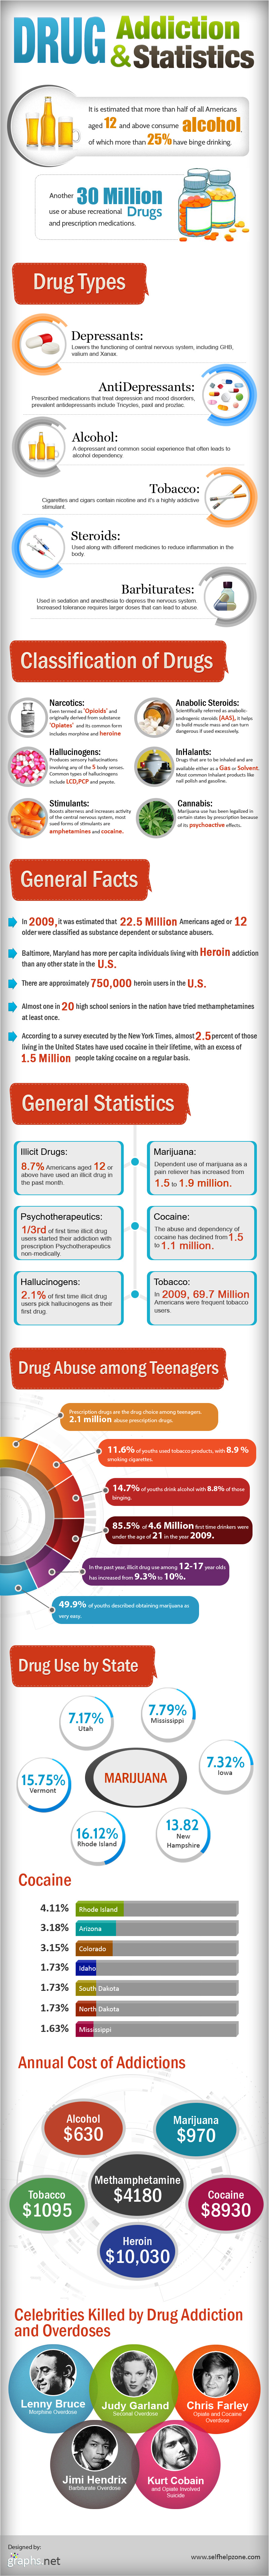 Statistics Related to Drug Addiction